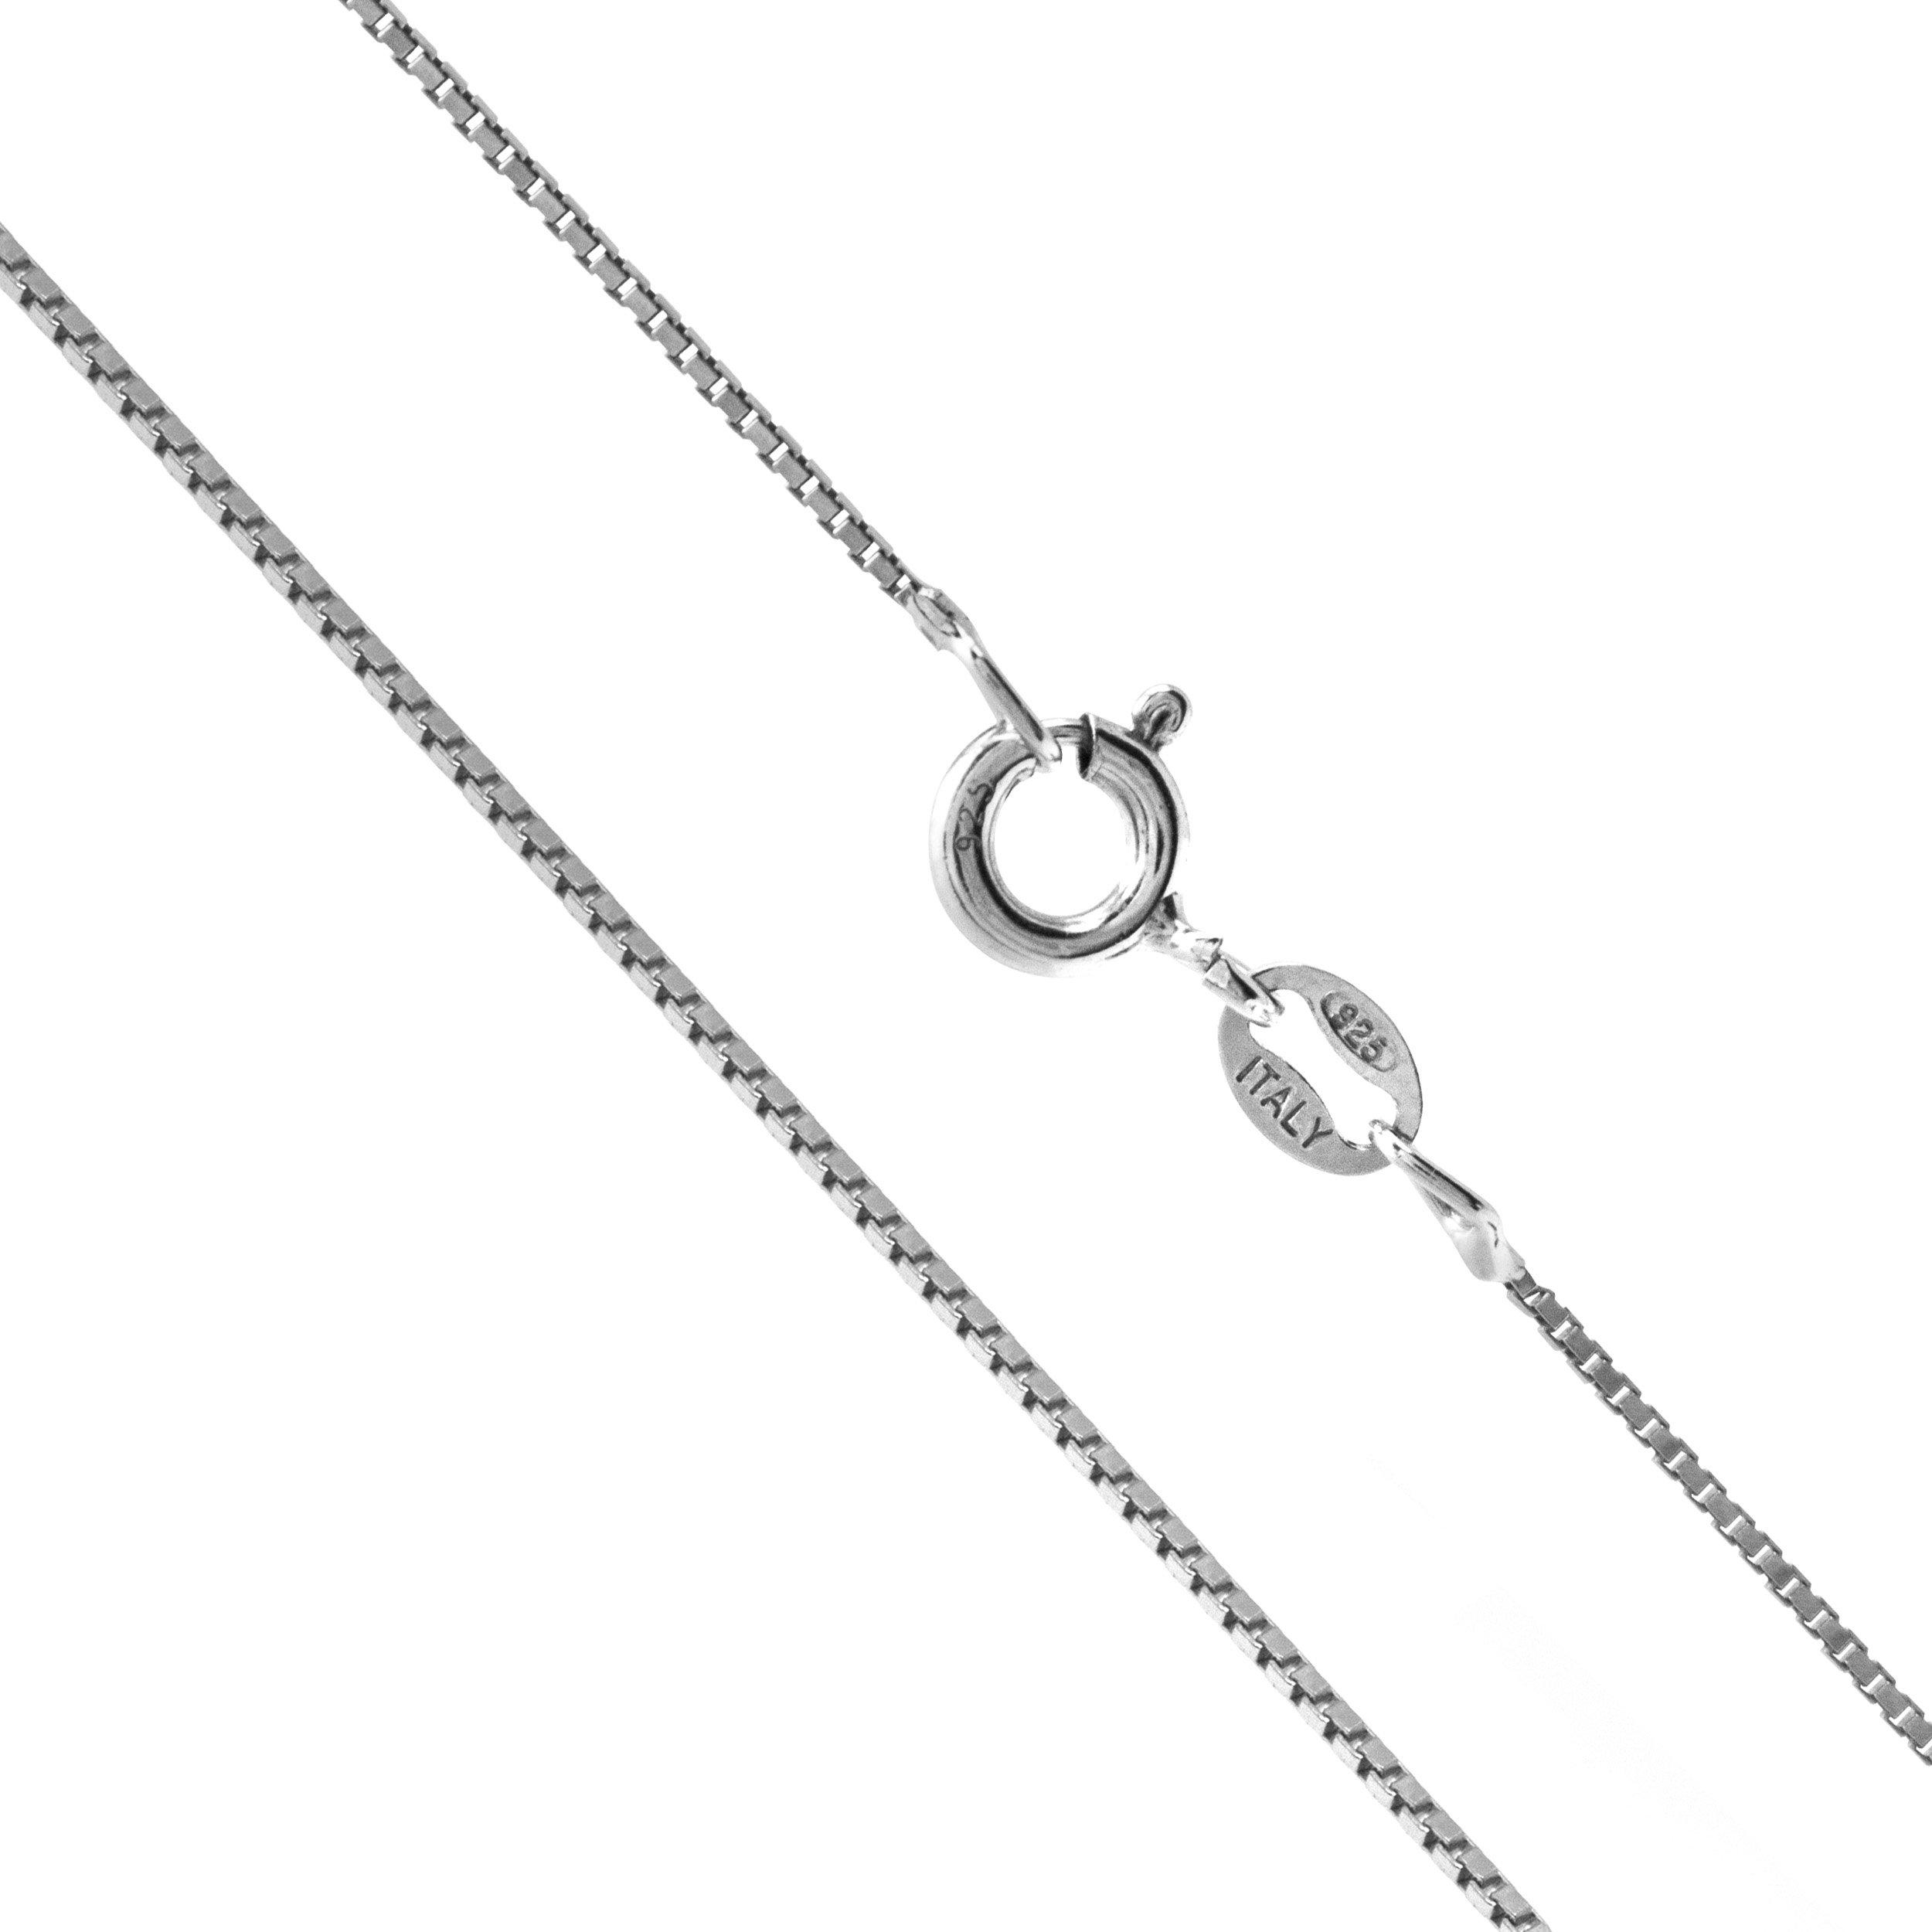 Sterling Silver 1mm Box Chain (18 Inches) by Honolulu Jewelry Company